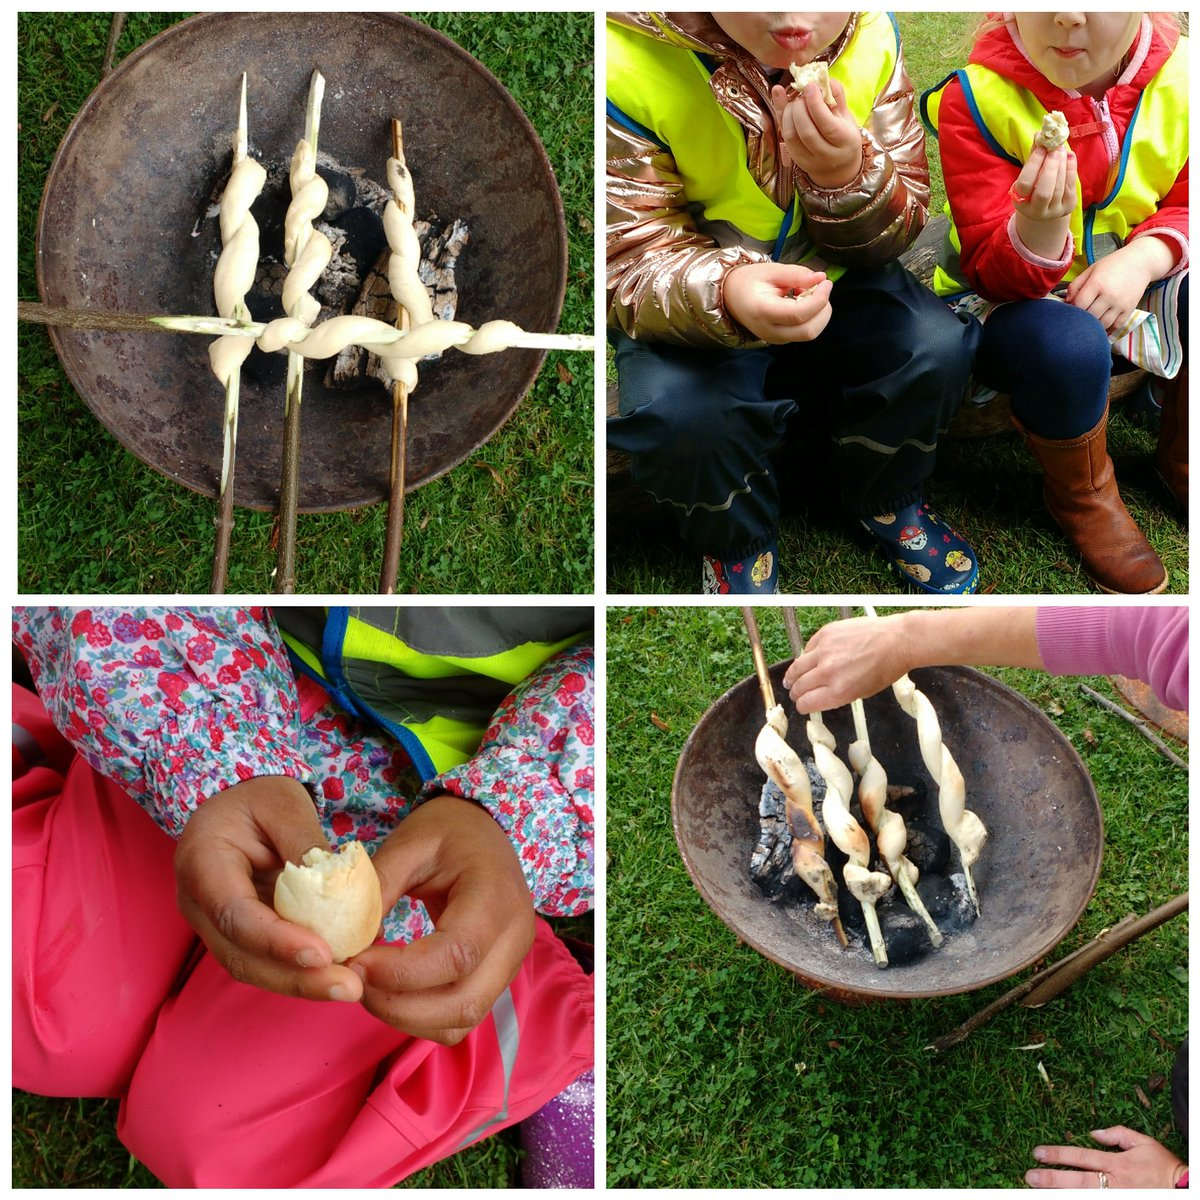 The children baked (and ate!) scrummy fresh bread during our last Forest School session of the year 😀😋 what a wonderful way to end the year. #happykids #forestschool #outdoorlearning #experiences #agoodplacetobe